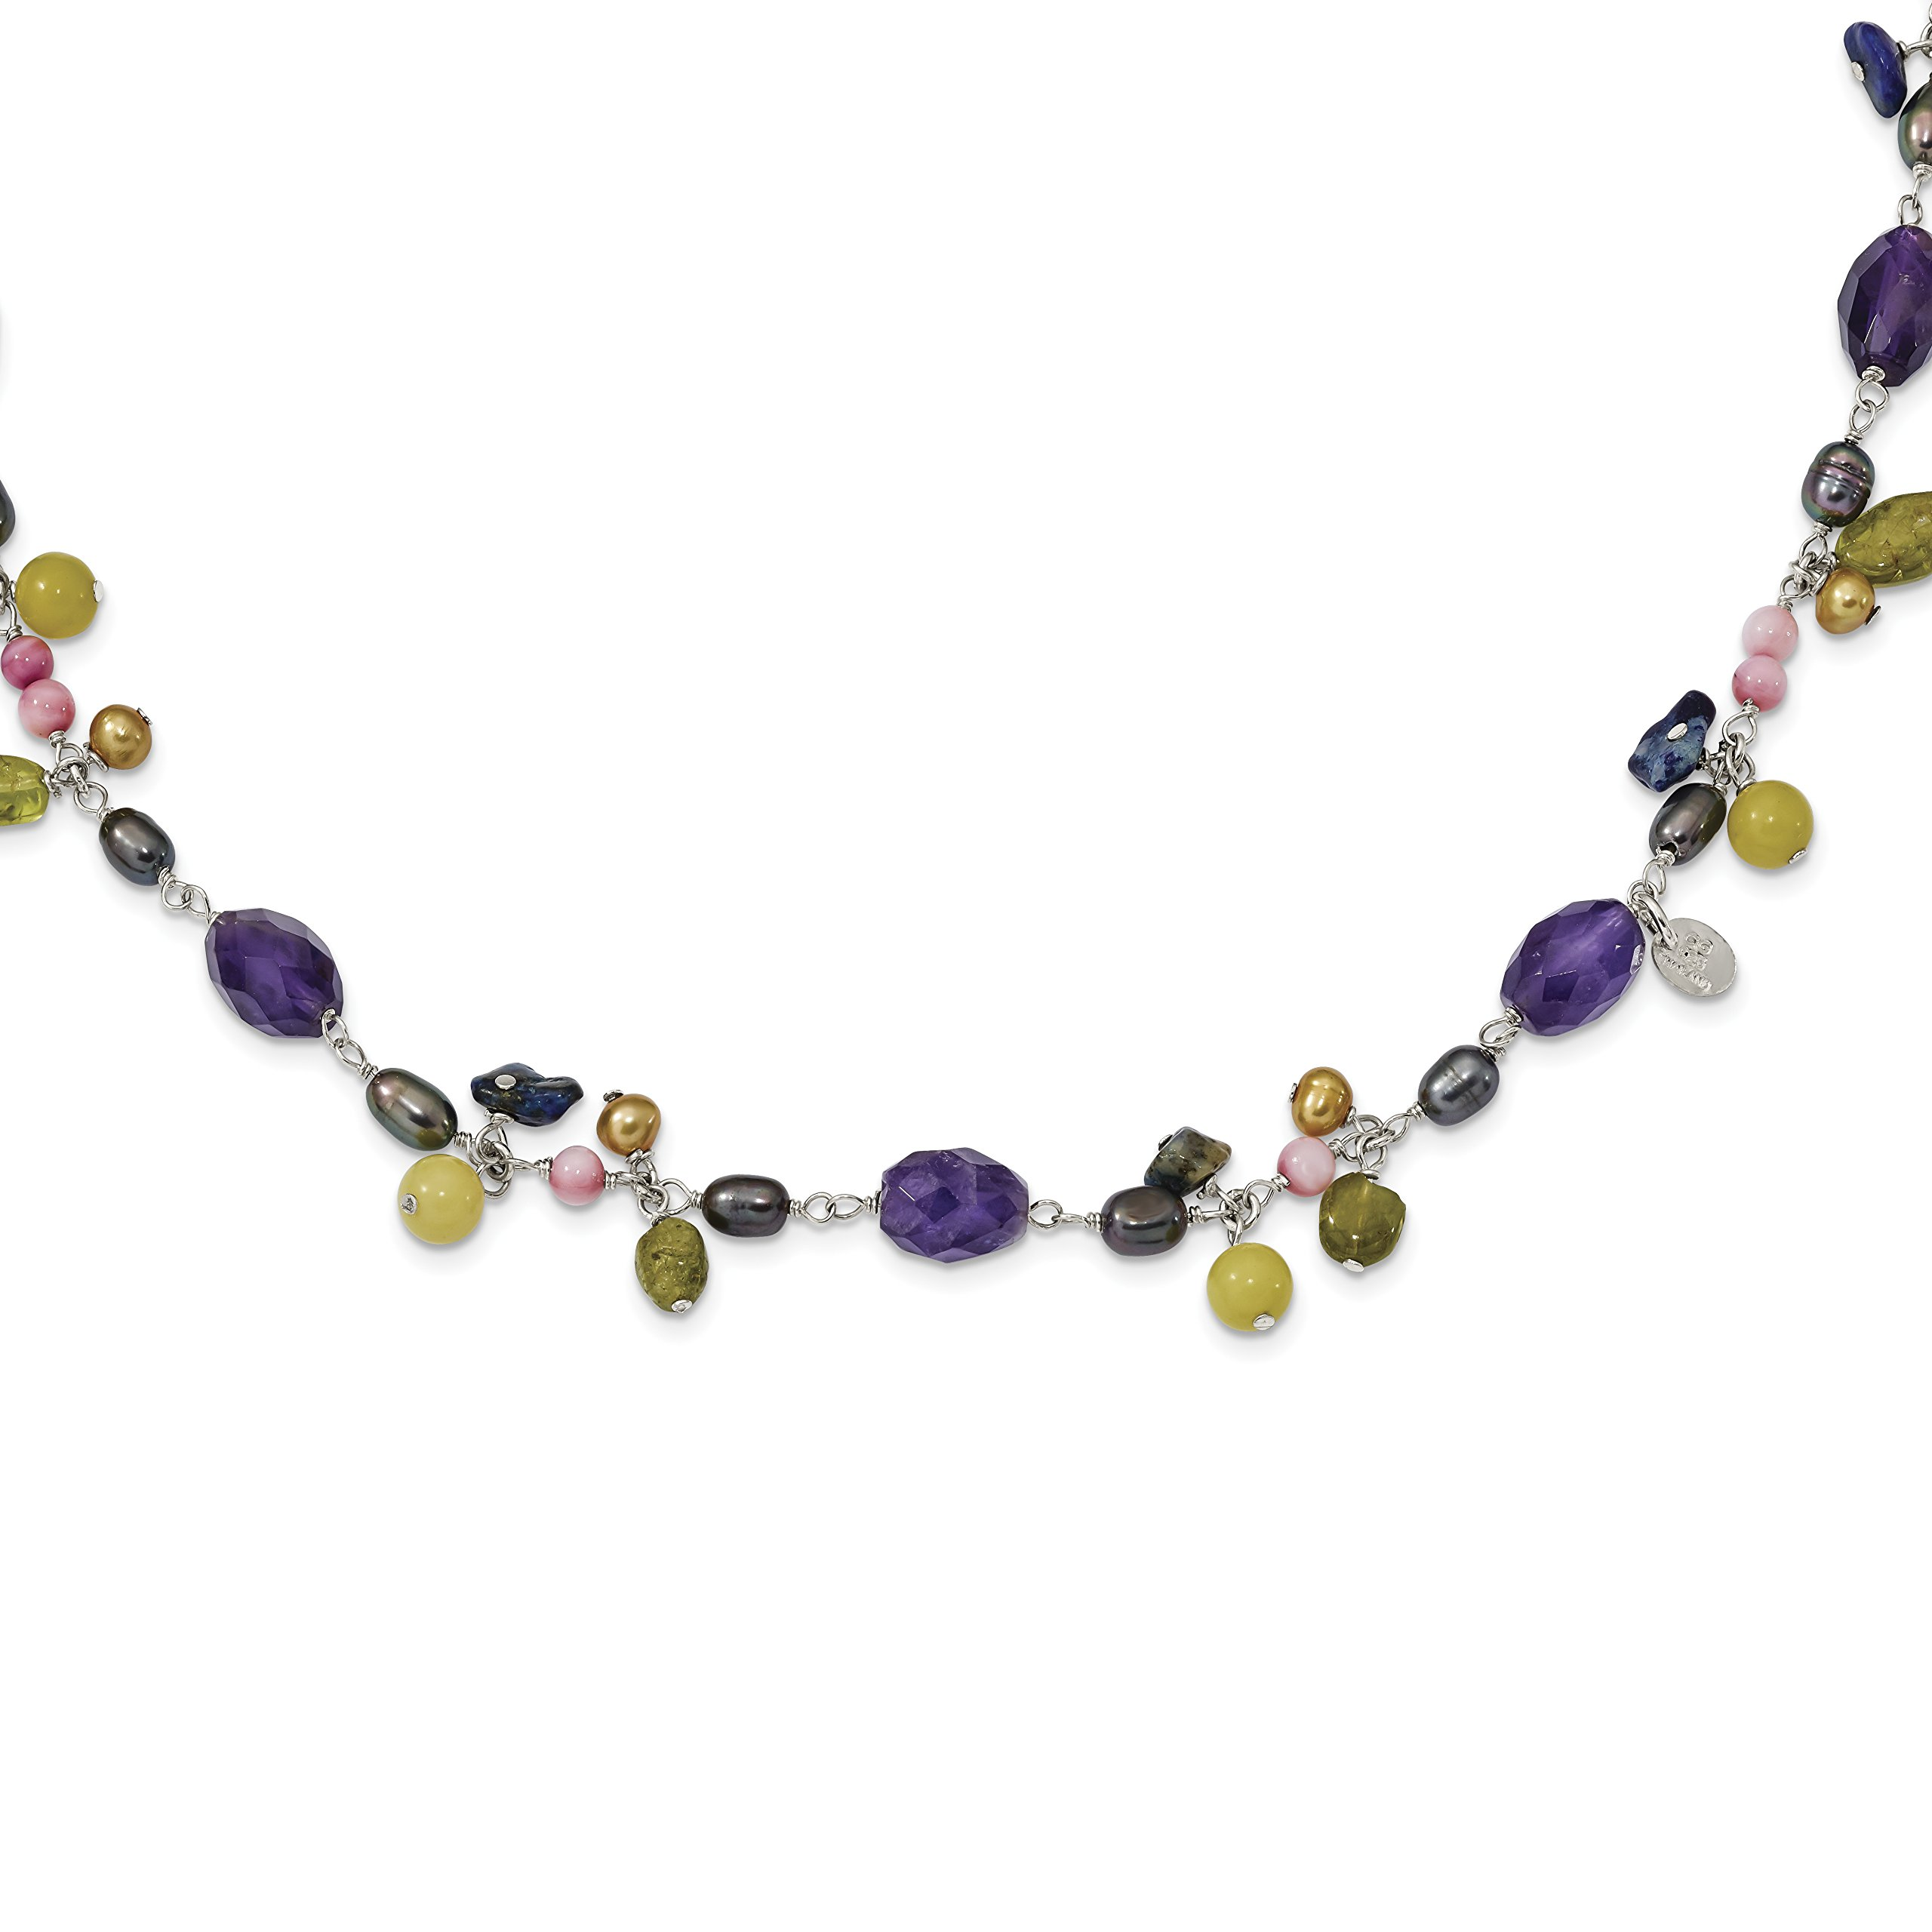 ICE CARATS 925 Sterling Silver Freshwater Culturedultpearlprple Gold/amy/yw Avent/jade/lapis/peridot Chain Necklace Pearl Natural Stone Fine Jewelry Gift Set For Women Heart